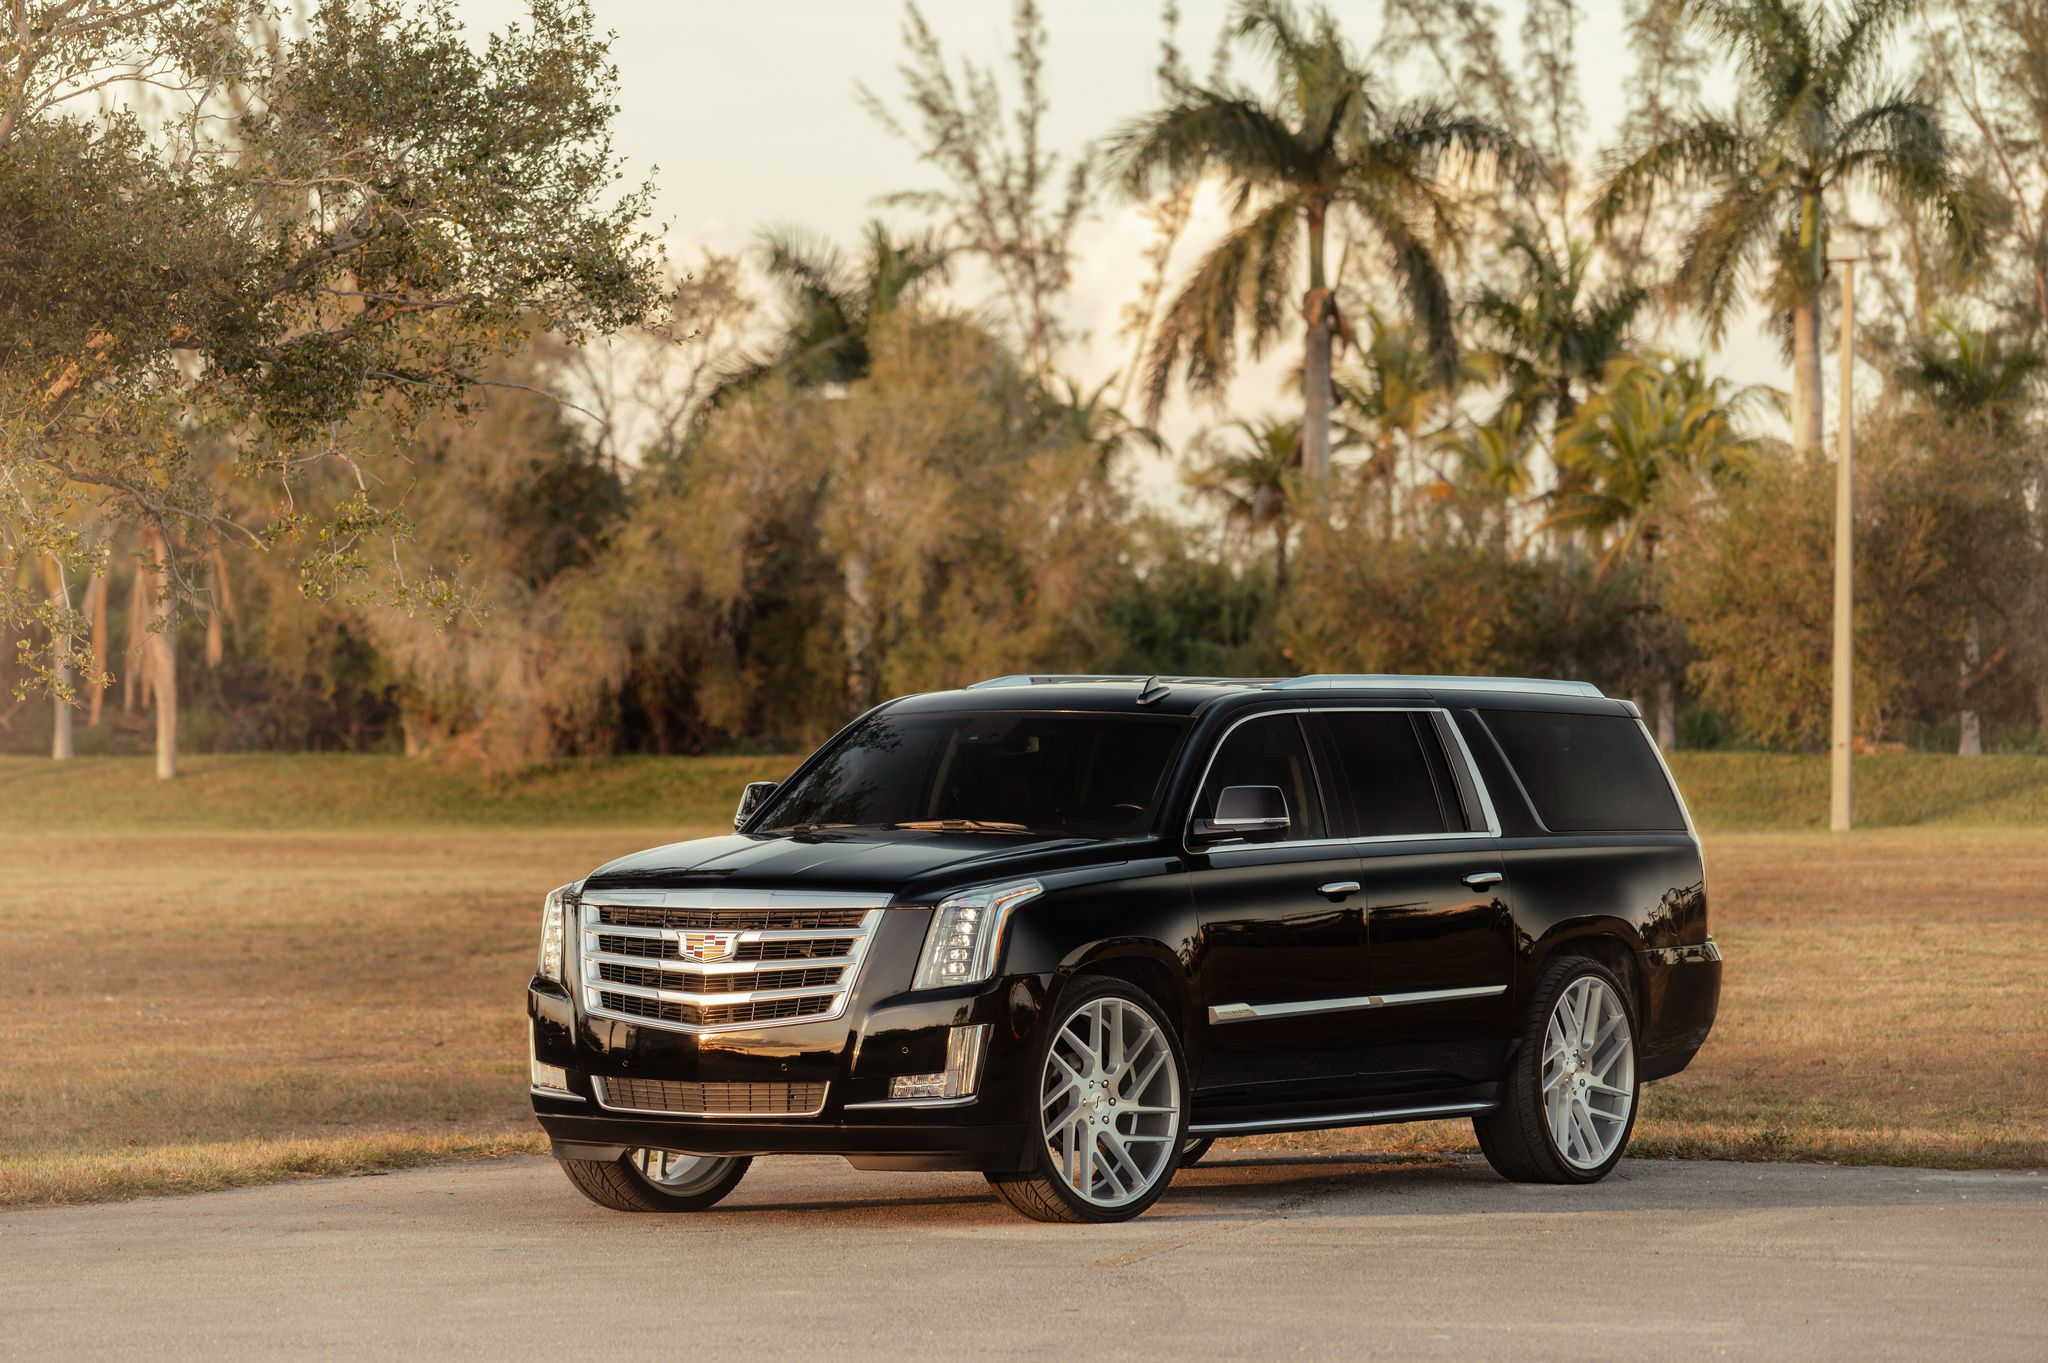 Cadillac Escalade - front-side view